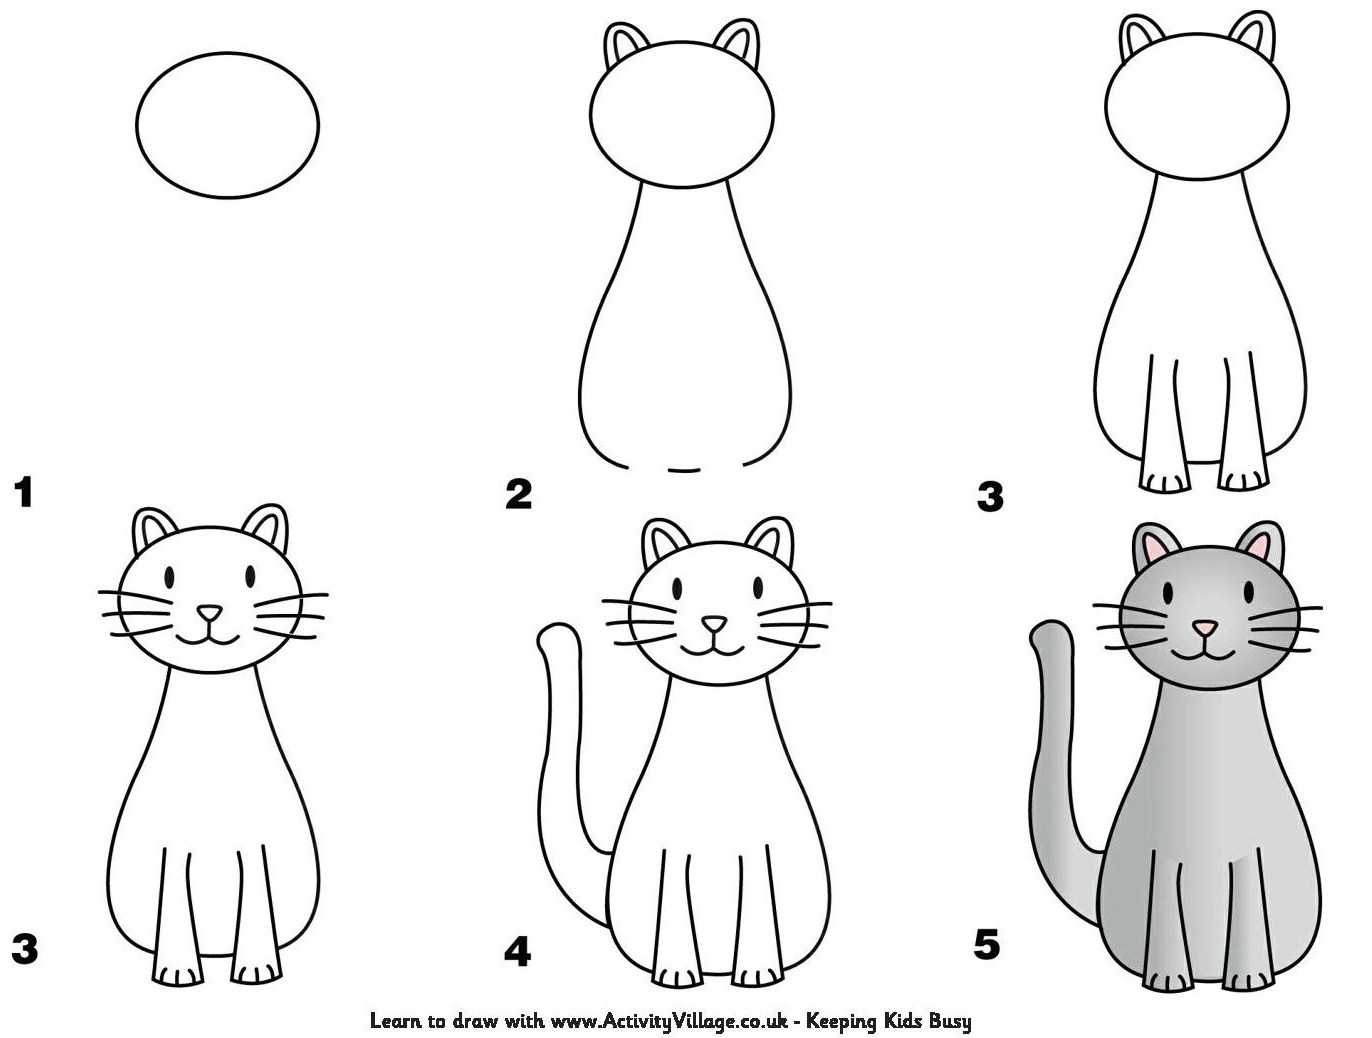 Tutoriels dessiner un chat - Modele dessin chat facile ...